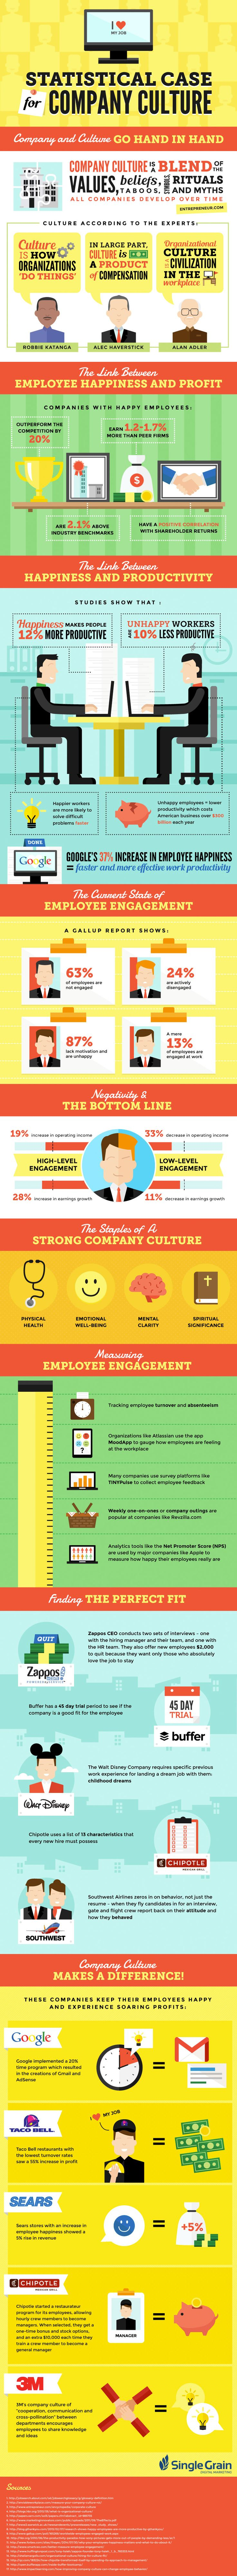 Statistical Case for Company Culture #infographic #Business #CompanyCulture